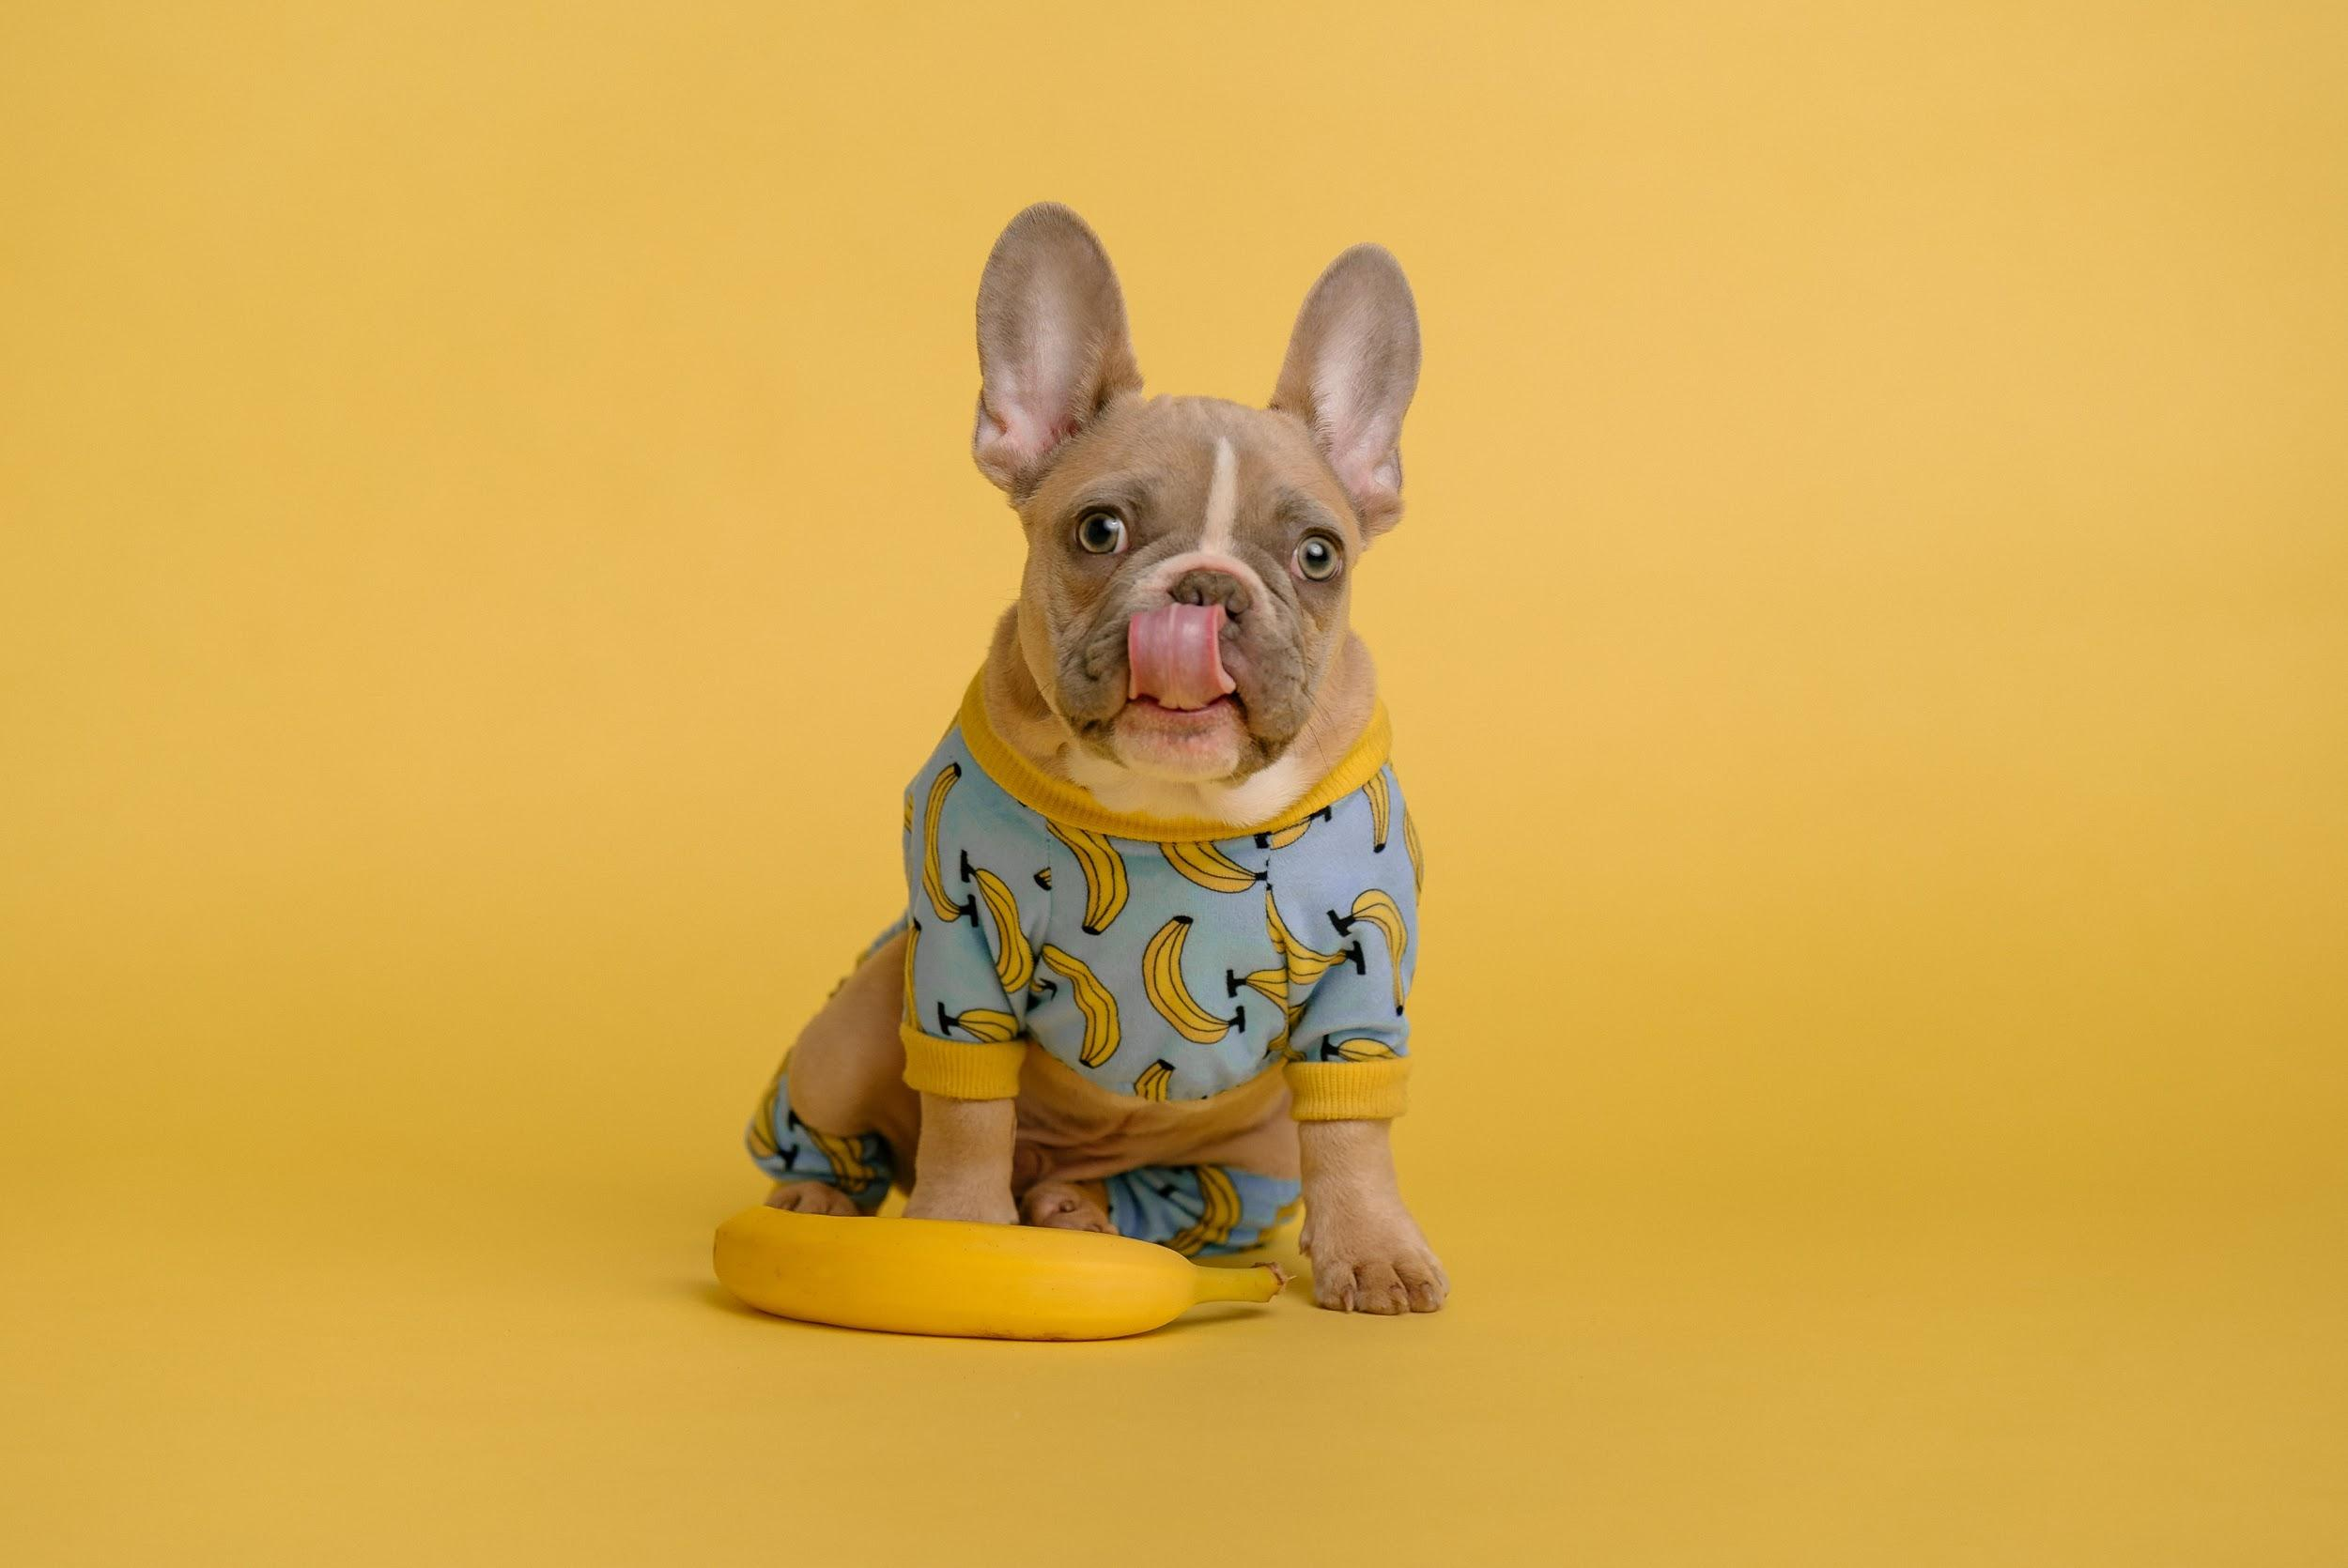 Dog Clothes Pros and Cons